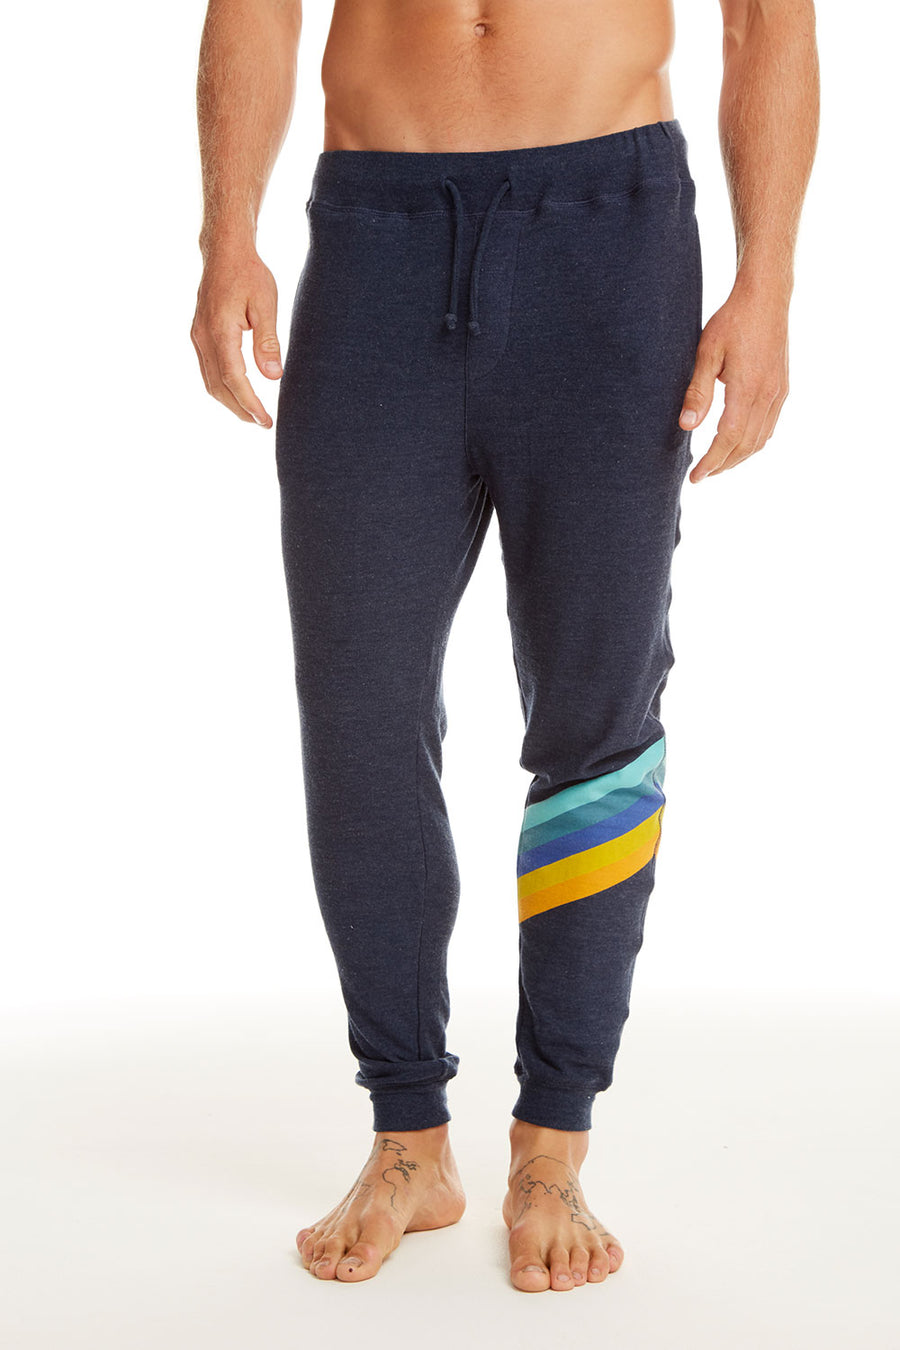 Surf Stripes Pants, MENS, chaserbrand.com,chaser clothing,chaser apparel,chaser los angeles